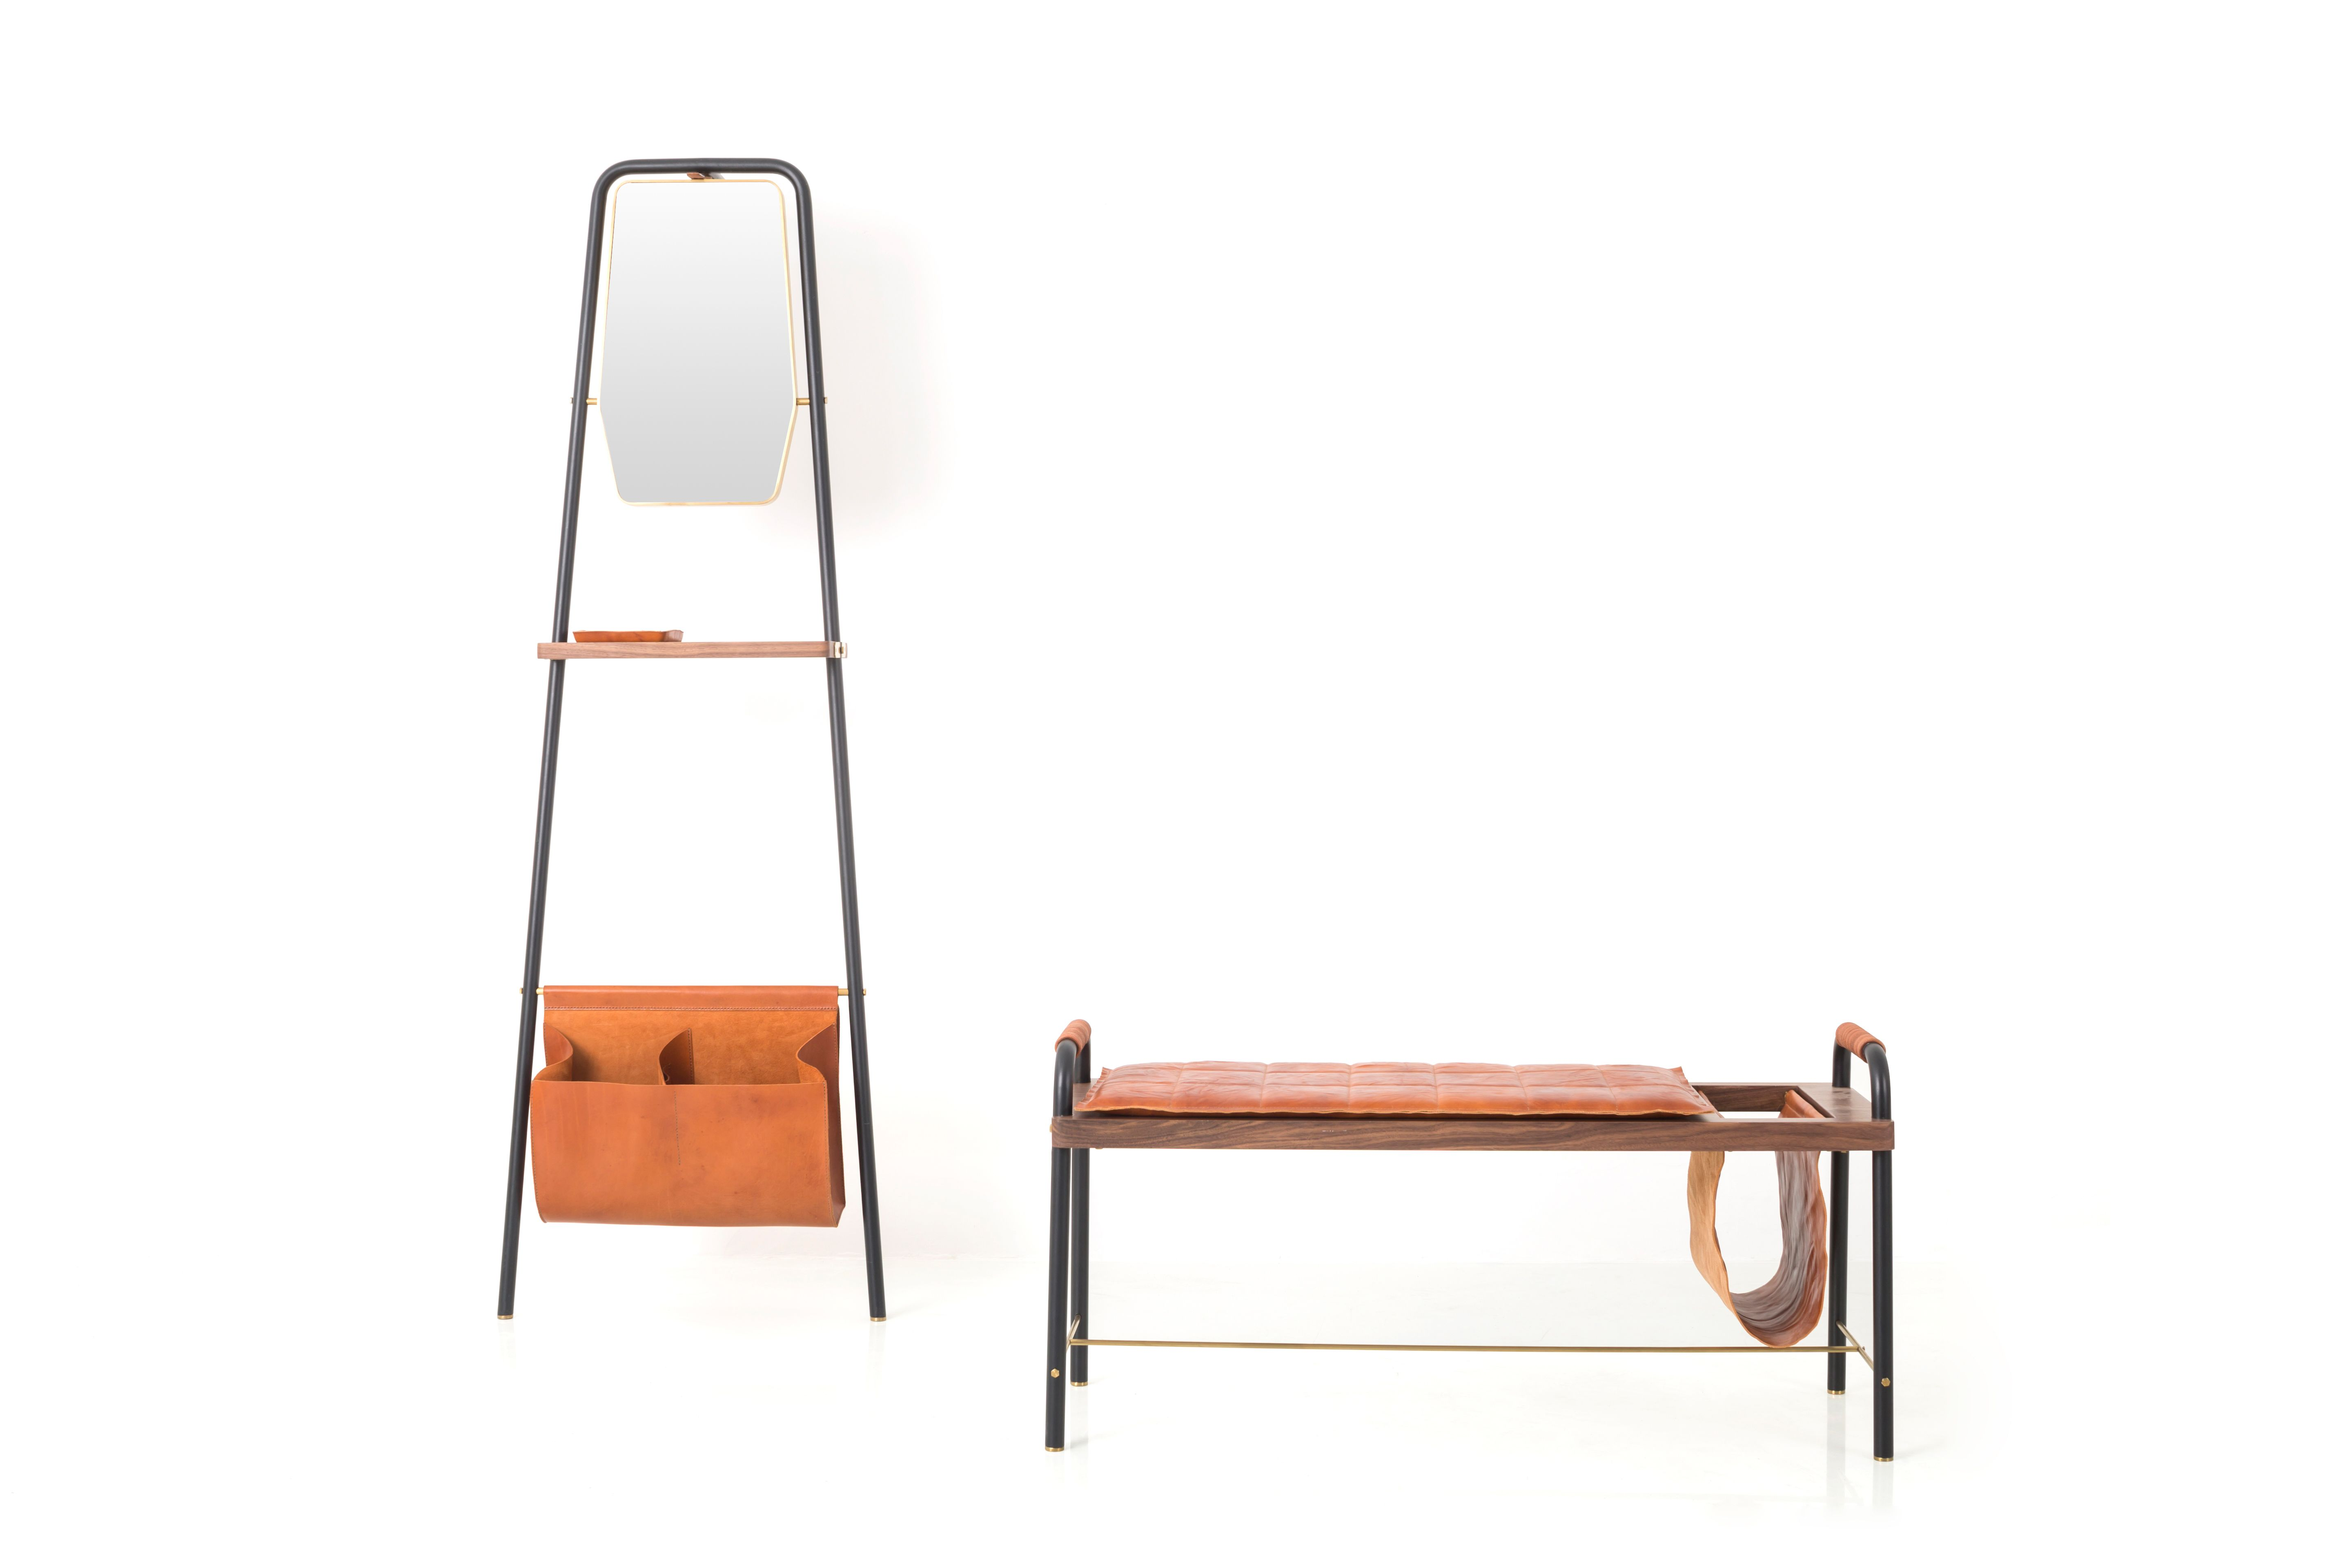 Panche In Pelle Design.Panca Imbottita In Pelle Valet Seated Bench Collezione Valet By